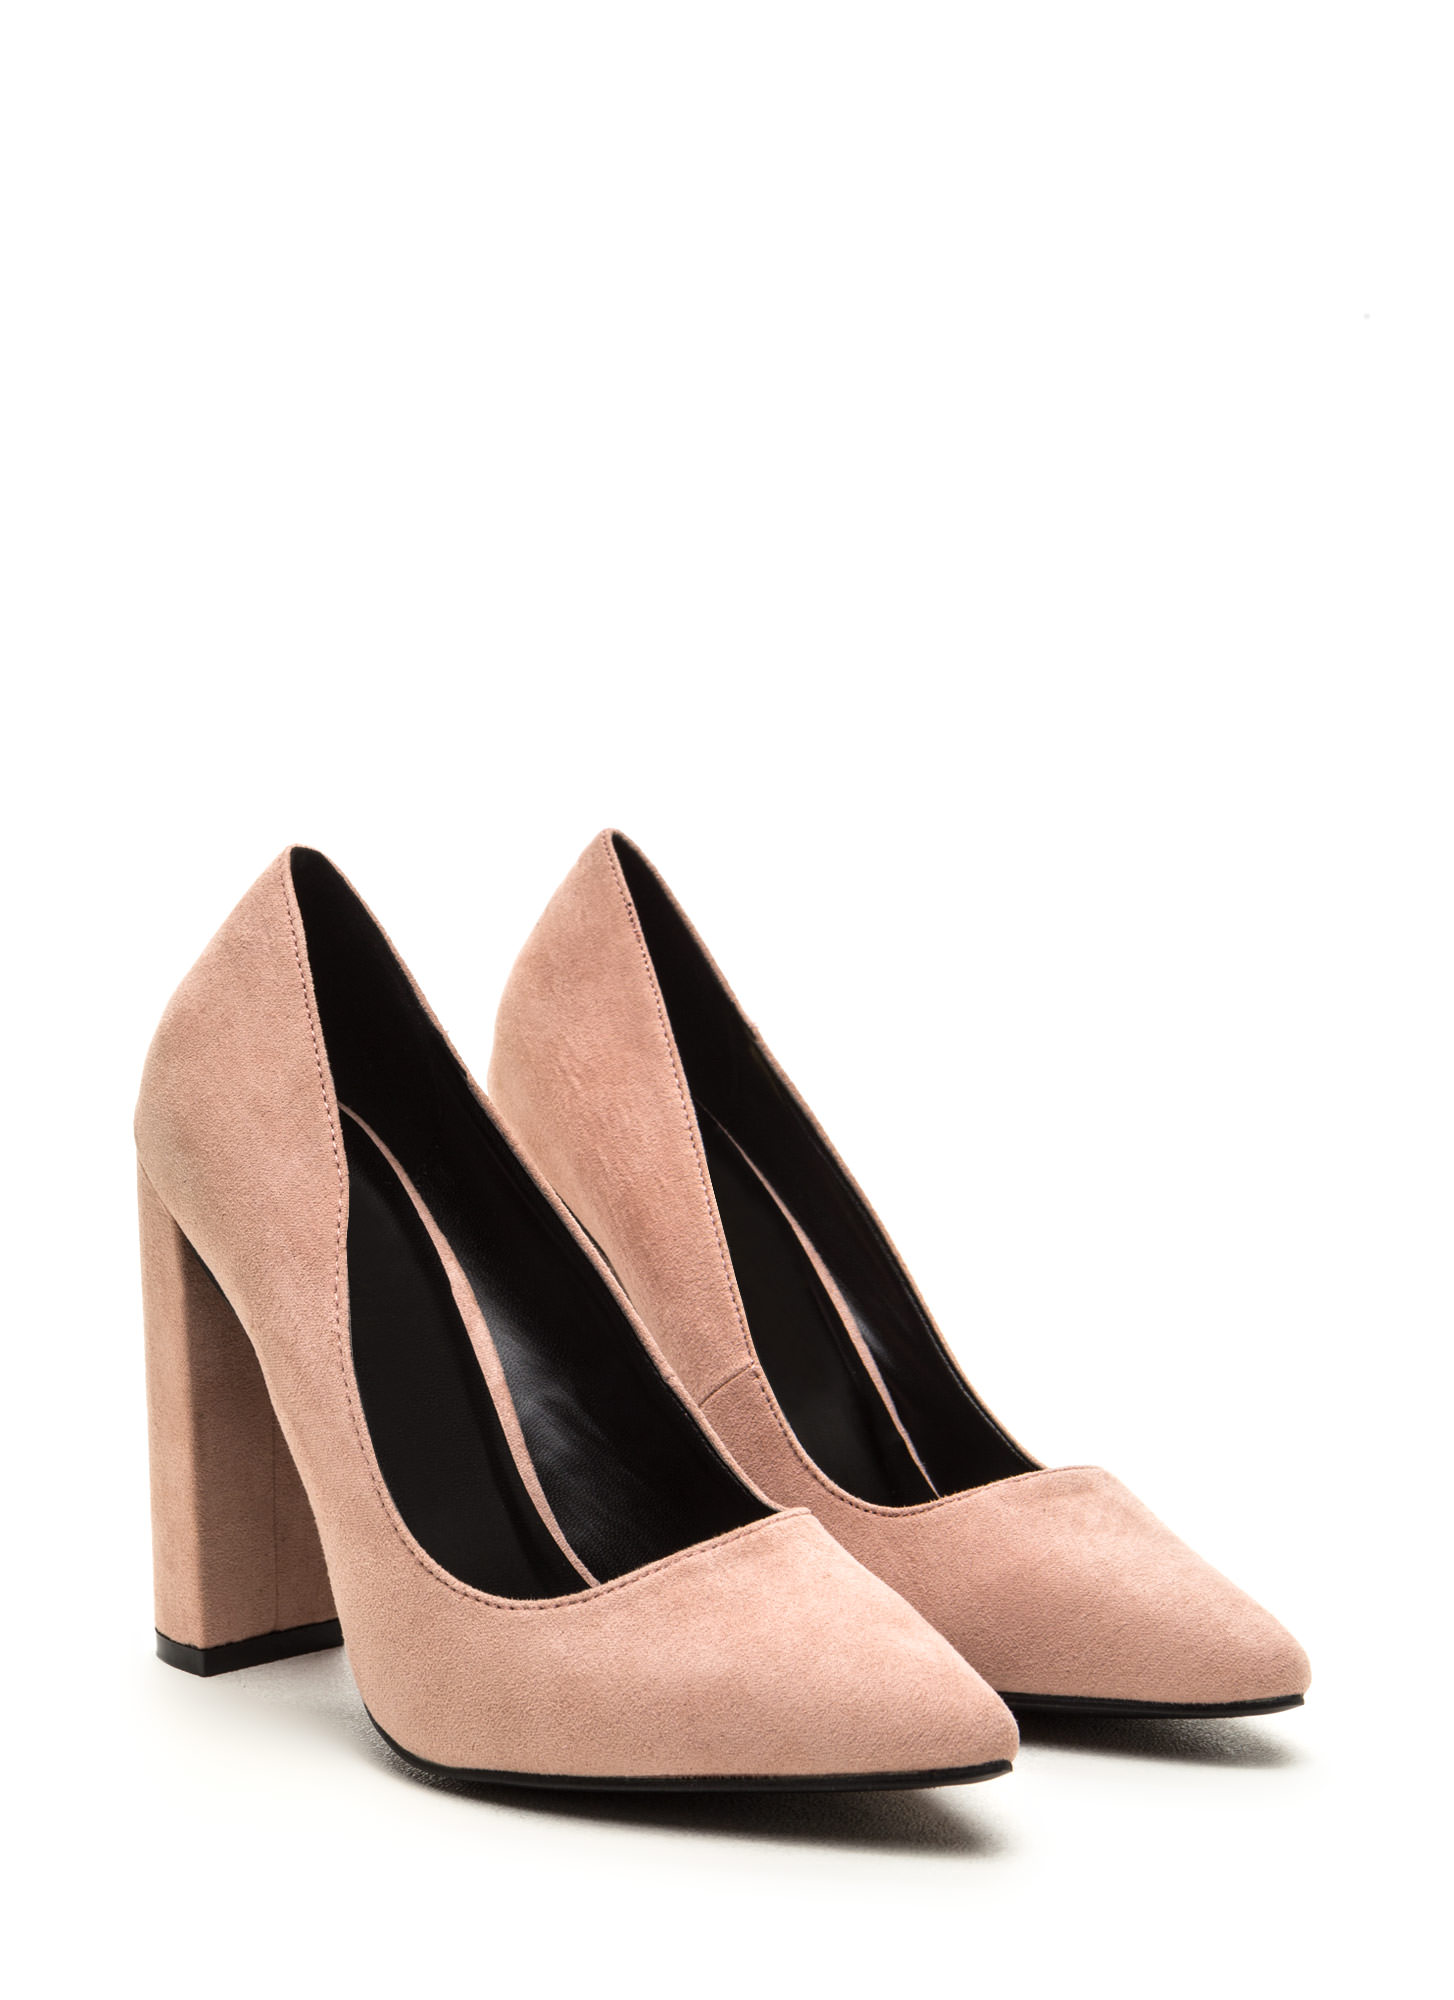 Business Chic Pointy Chunky Heel Pumps BLUSH